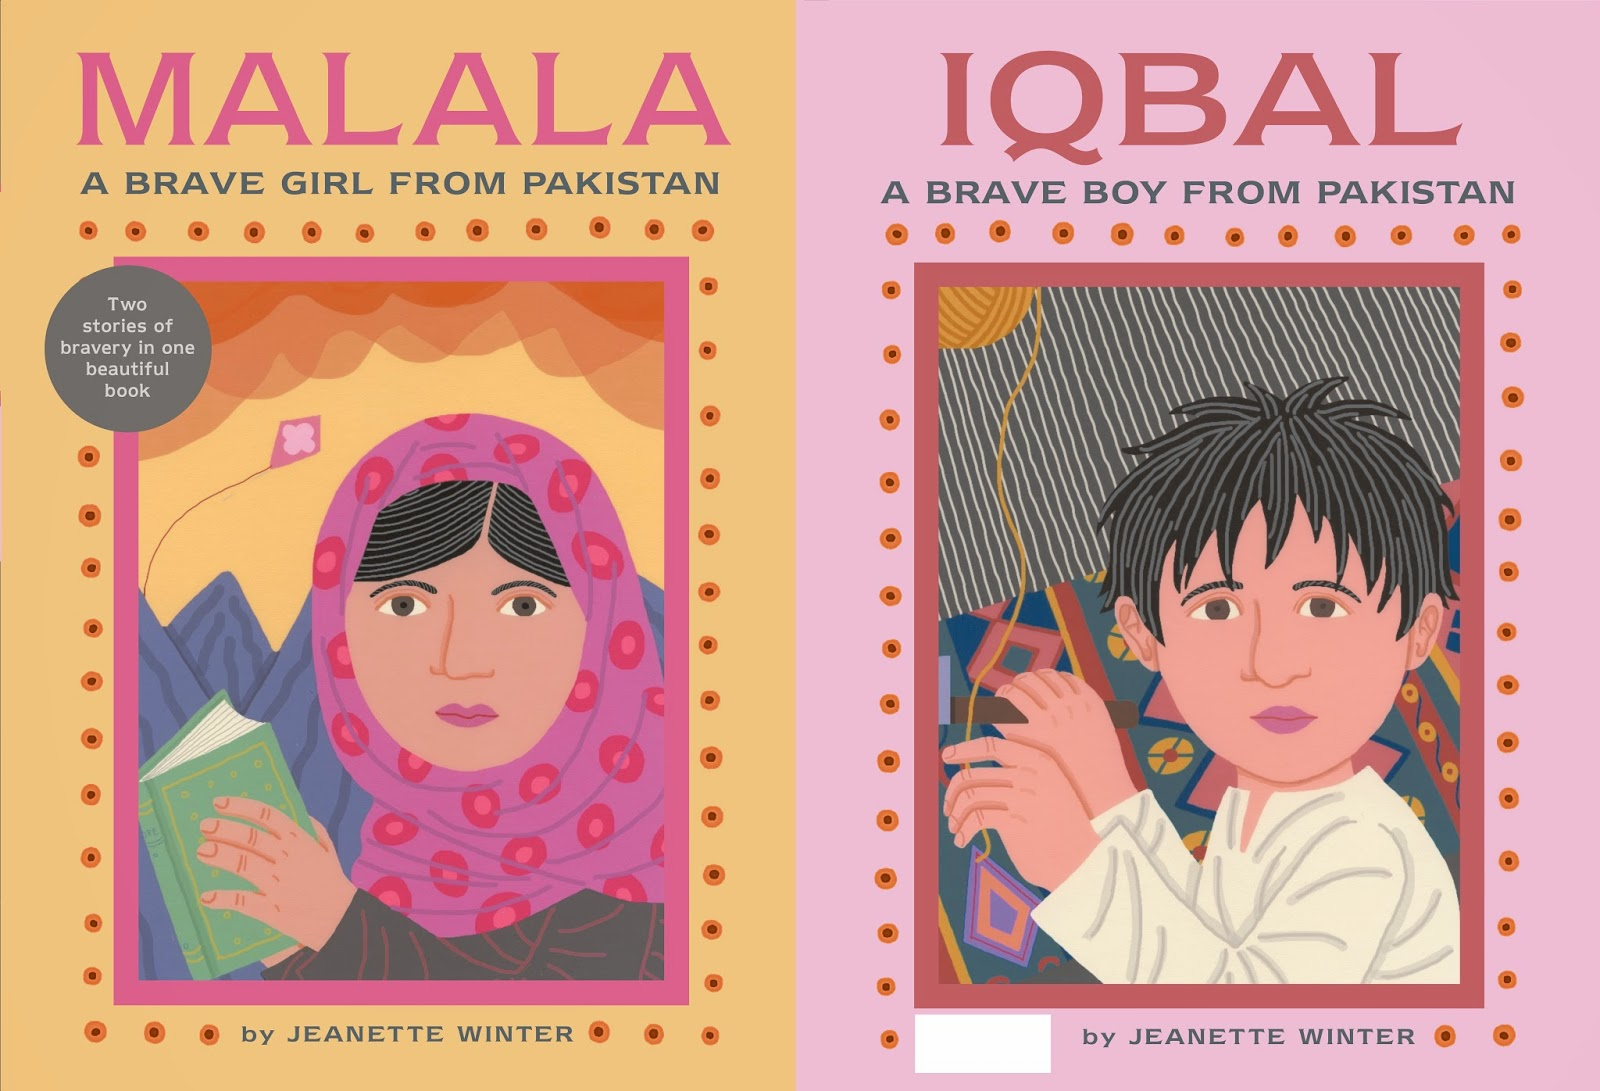 the brave girl malala yousafzai Malala yousafzai was born in mingora, pakistan on july 12, 1997 she began a  path of advocacy for girls' education at an early age.